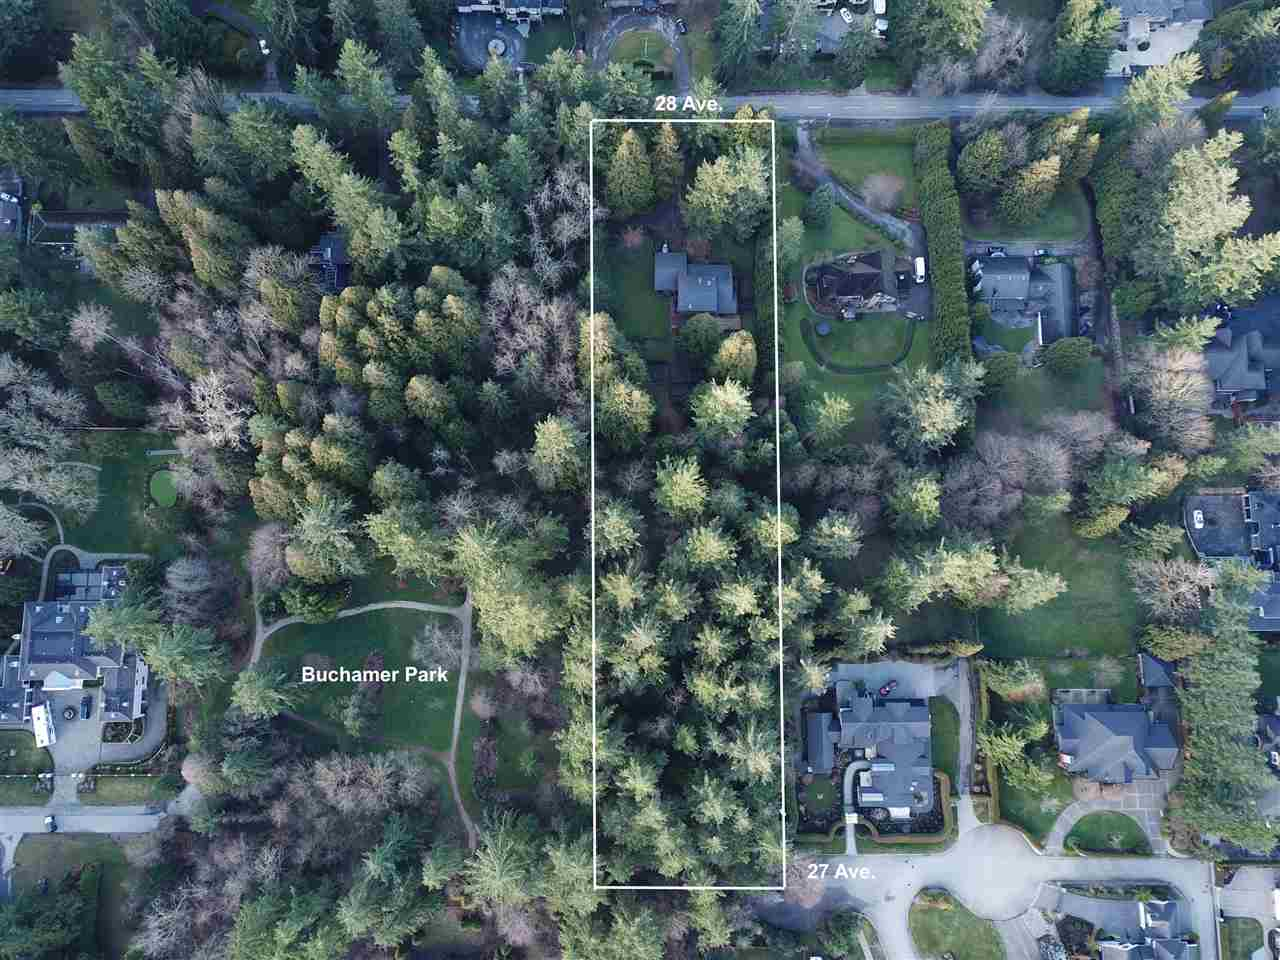 INVESTOR / DEVELOPER ALTER! Rare find 2.34 Acres sub-dividable property in the prestigious Elgin Chantrell, South Surrey. Two accesses, one on 28 Ave. at the front and another one from 27 Ave at the south back of the property, next to beautiful Buchamer Park. The maximum unit density would be five units per hectare (two units per acre). The property is designated Half-acre gross density in the Central Semiahmoo Peninsula Local Area Plan (LAP). The existing house is well taken of by the current owner with 3,579 sqft on a split level layout. The roof was replaced in 2005, 24'*32' workshop at the back. Great neighbourhood with multi-million dollar homes surrounded. Perfect for holding or development. Great school catchment Chantrell Creek Elementary. and Elgin Park Secondary school.